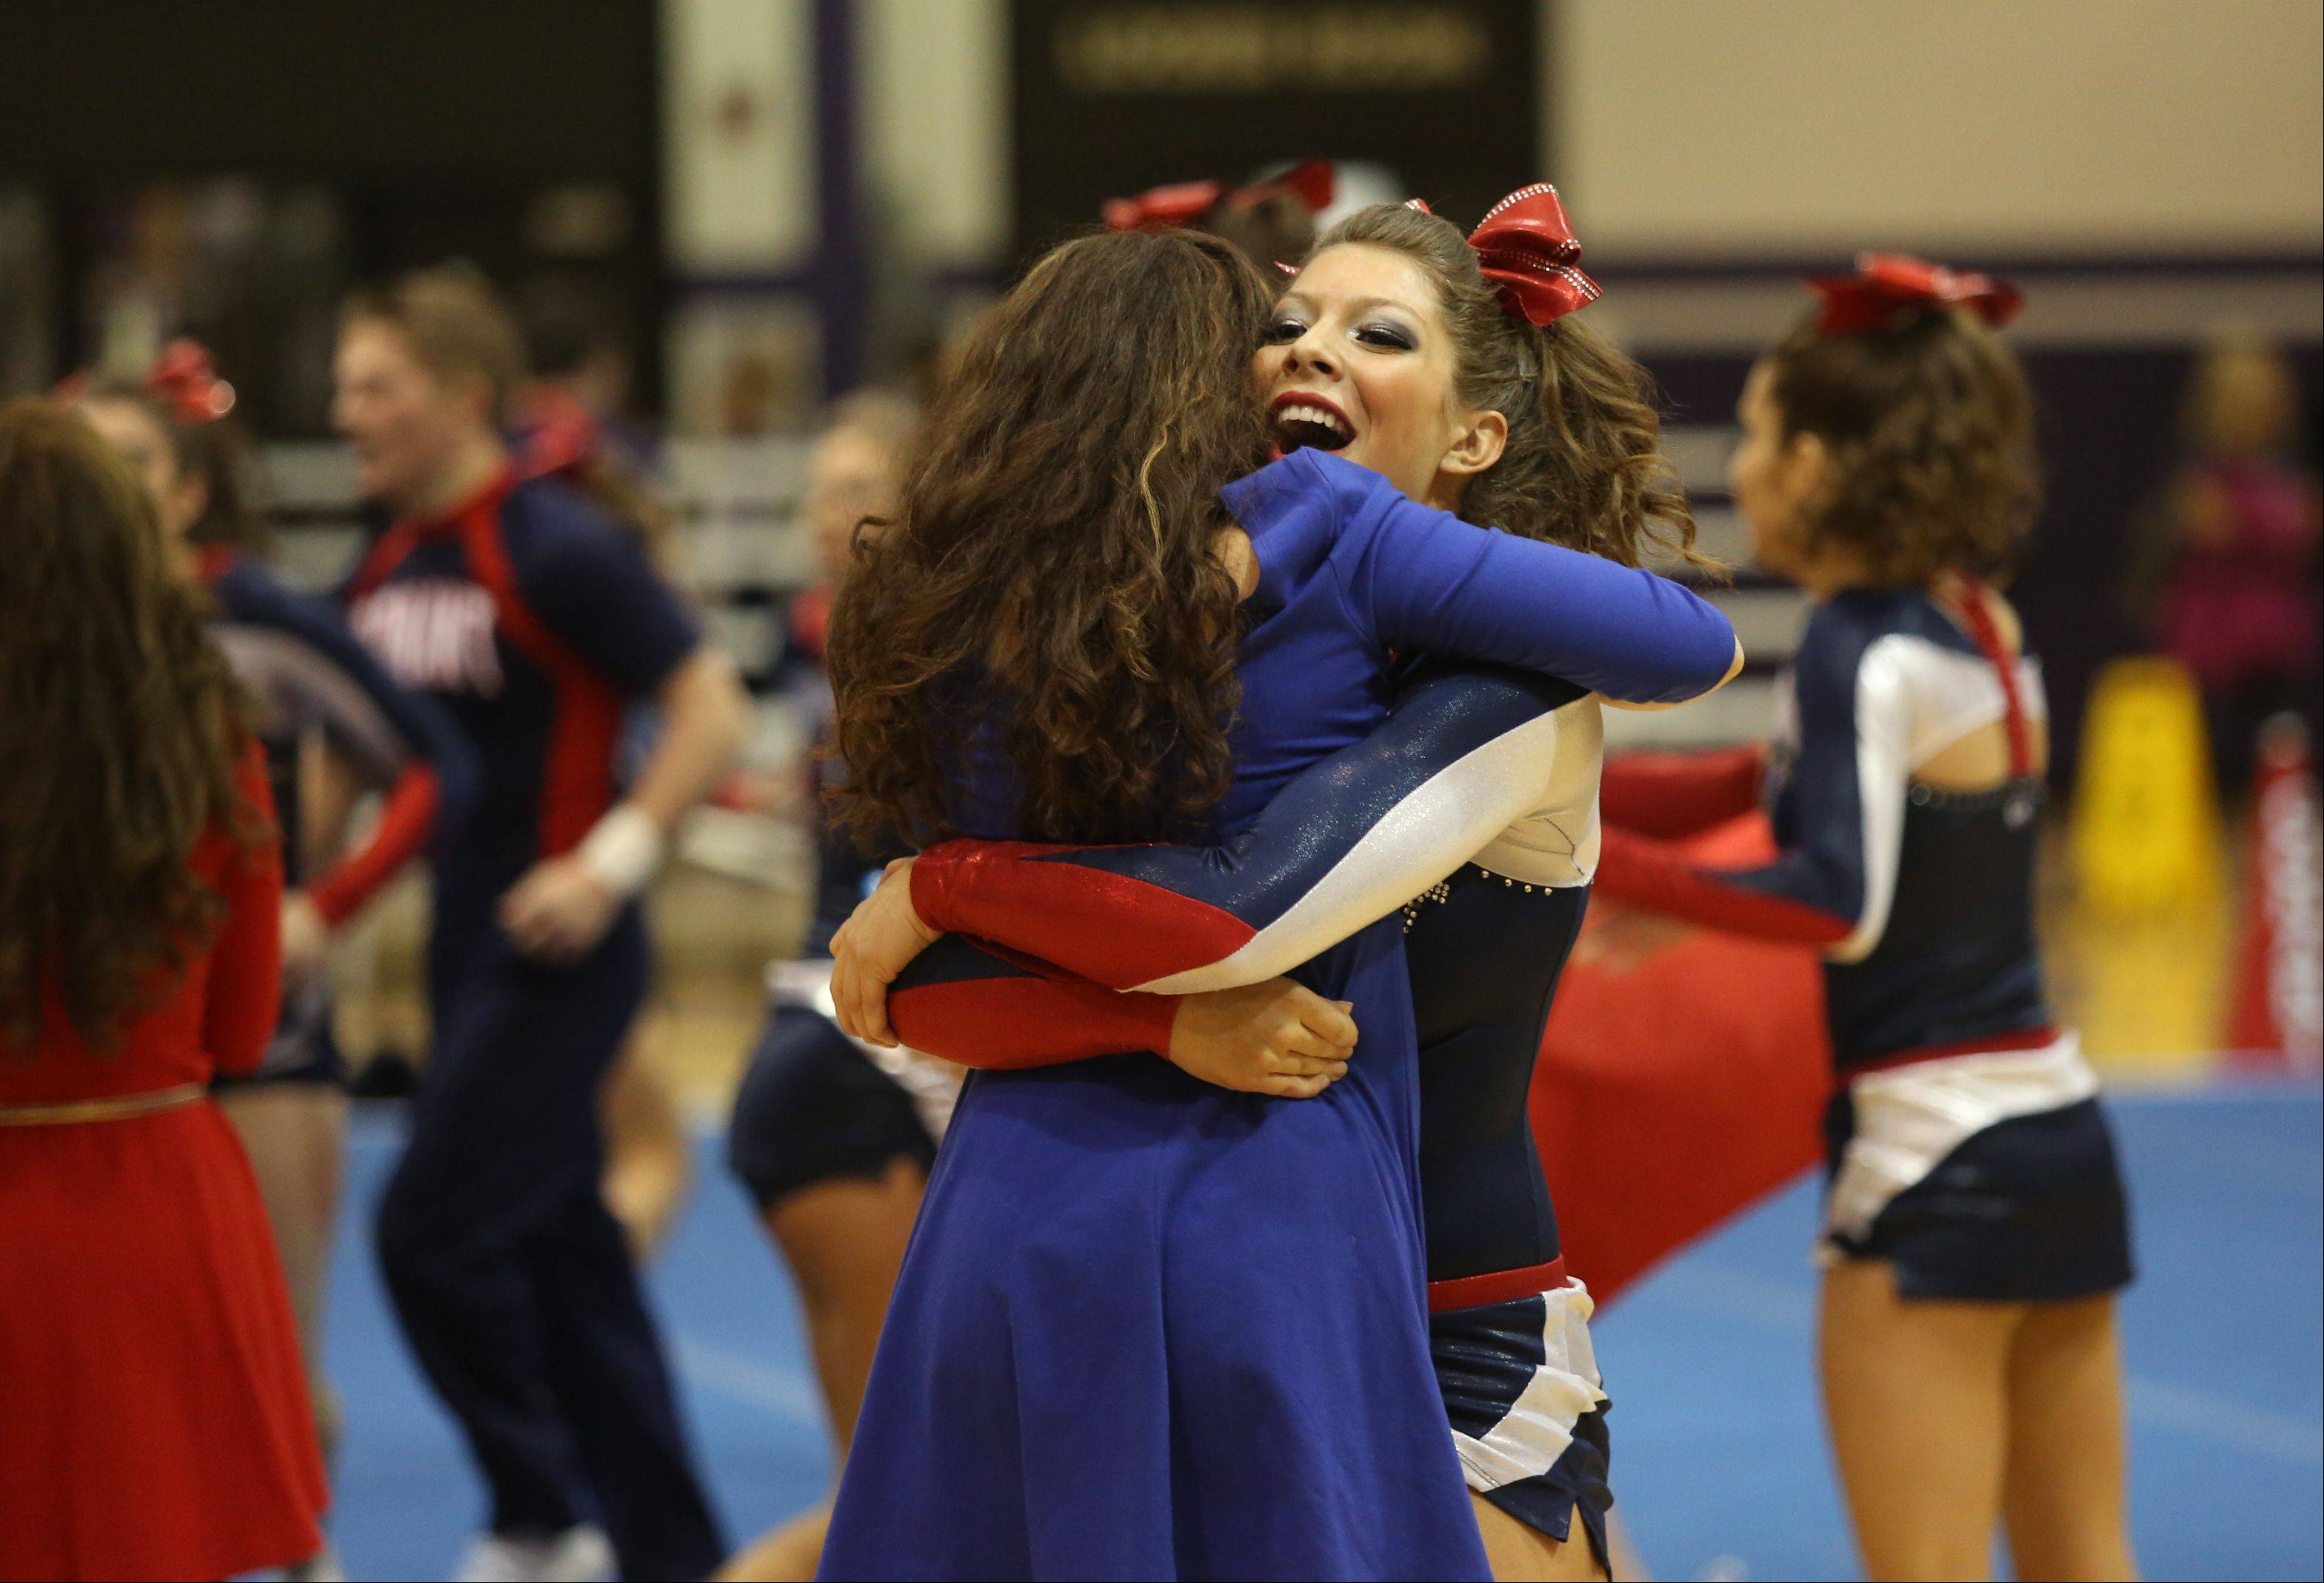 Conant High School cheerleader Lauren Cullen hugs her coach after competing in the Coed Team category during the IHSA Cheerleading Sectional Sunday hosted by Rolling Meadows High School.